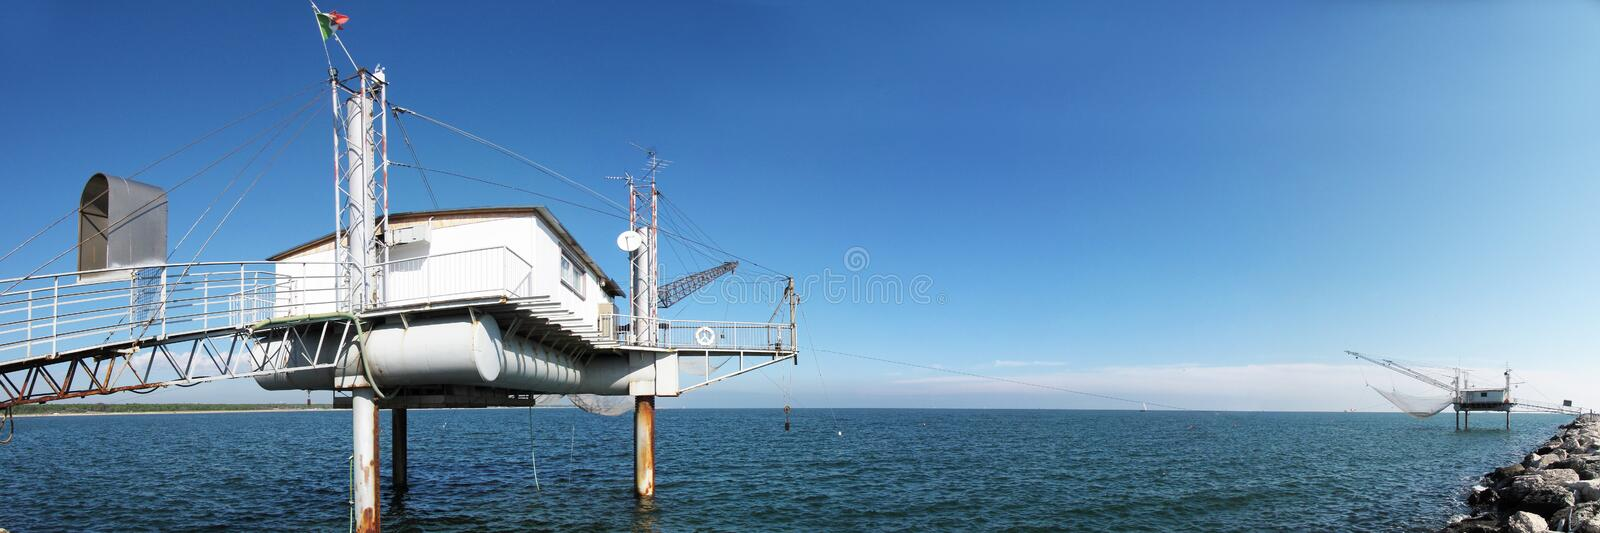 Fishing structure royalty free stock photography